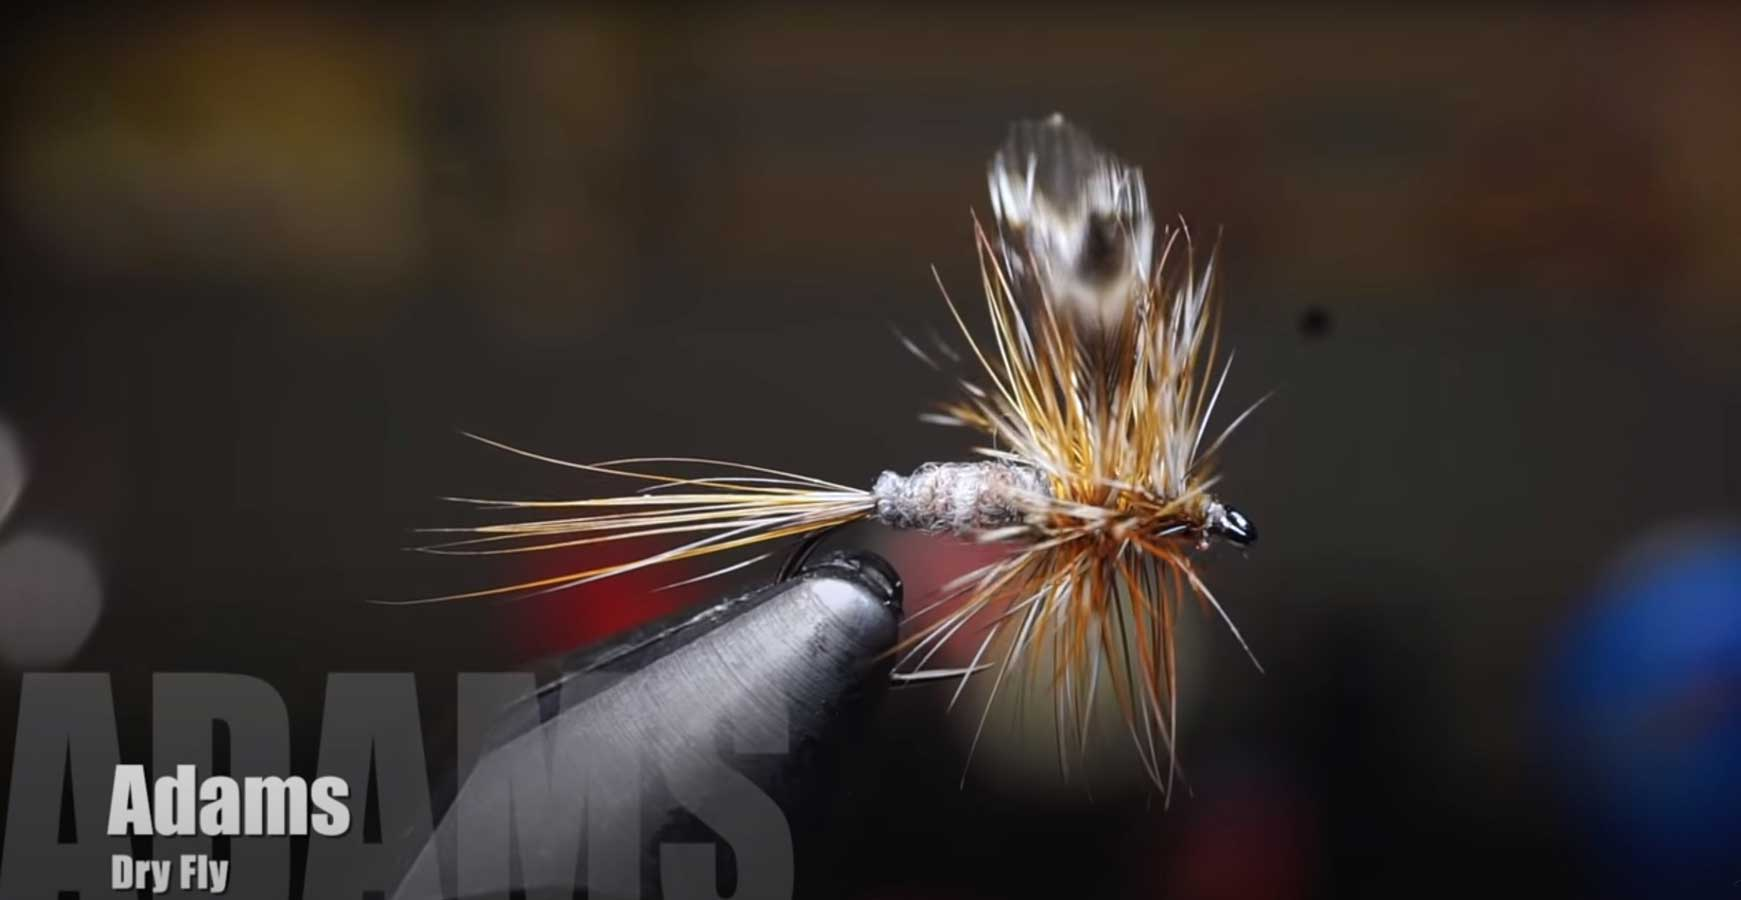 How to Tie an Adams Dry Fly